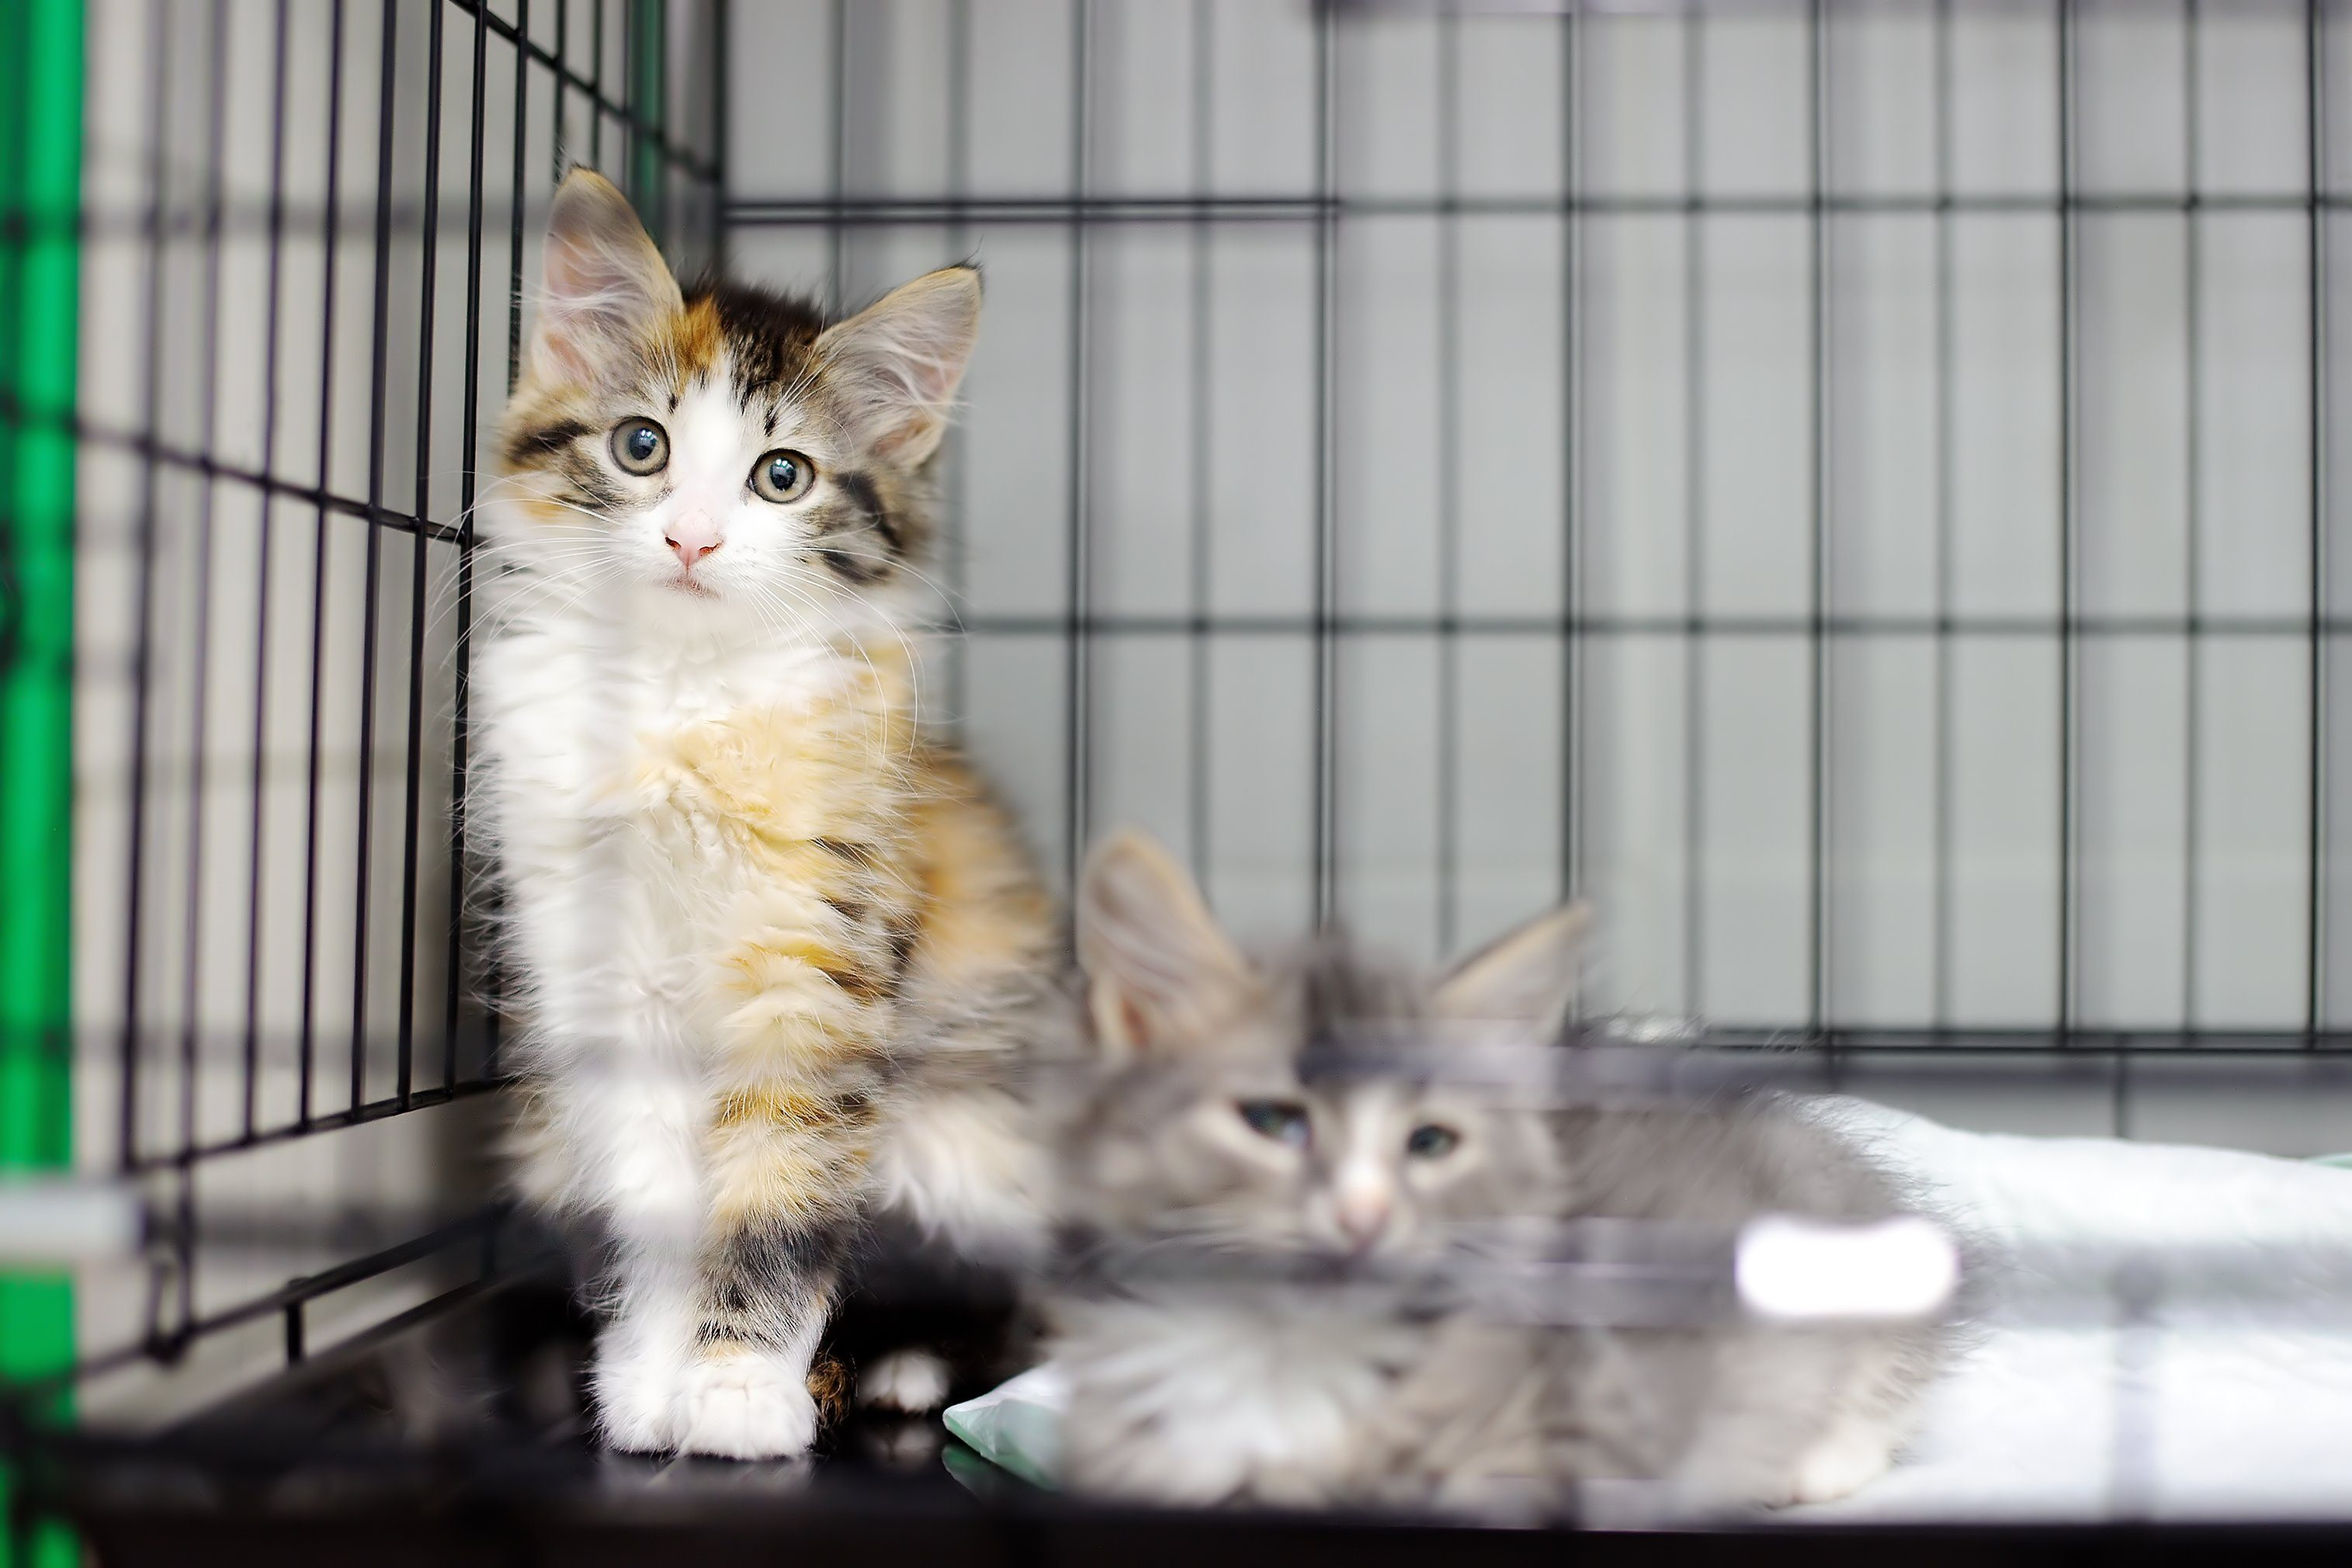 Two kittens in a cage in an animal shelter